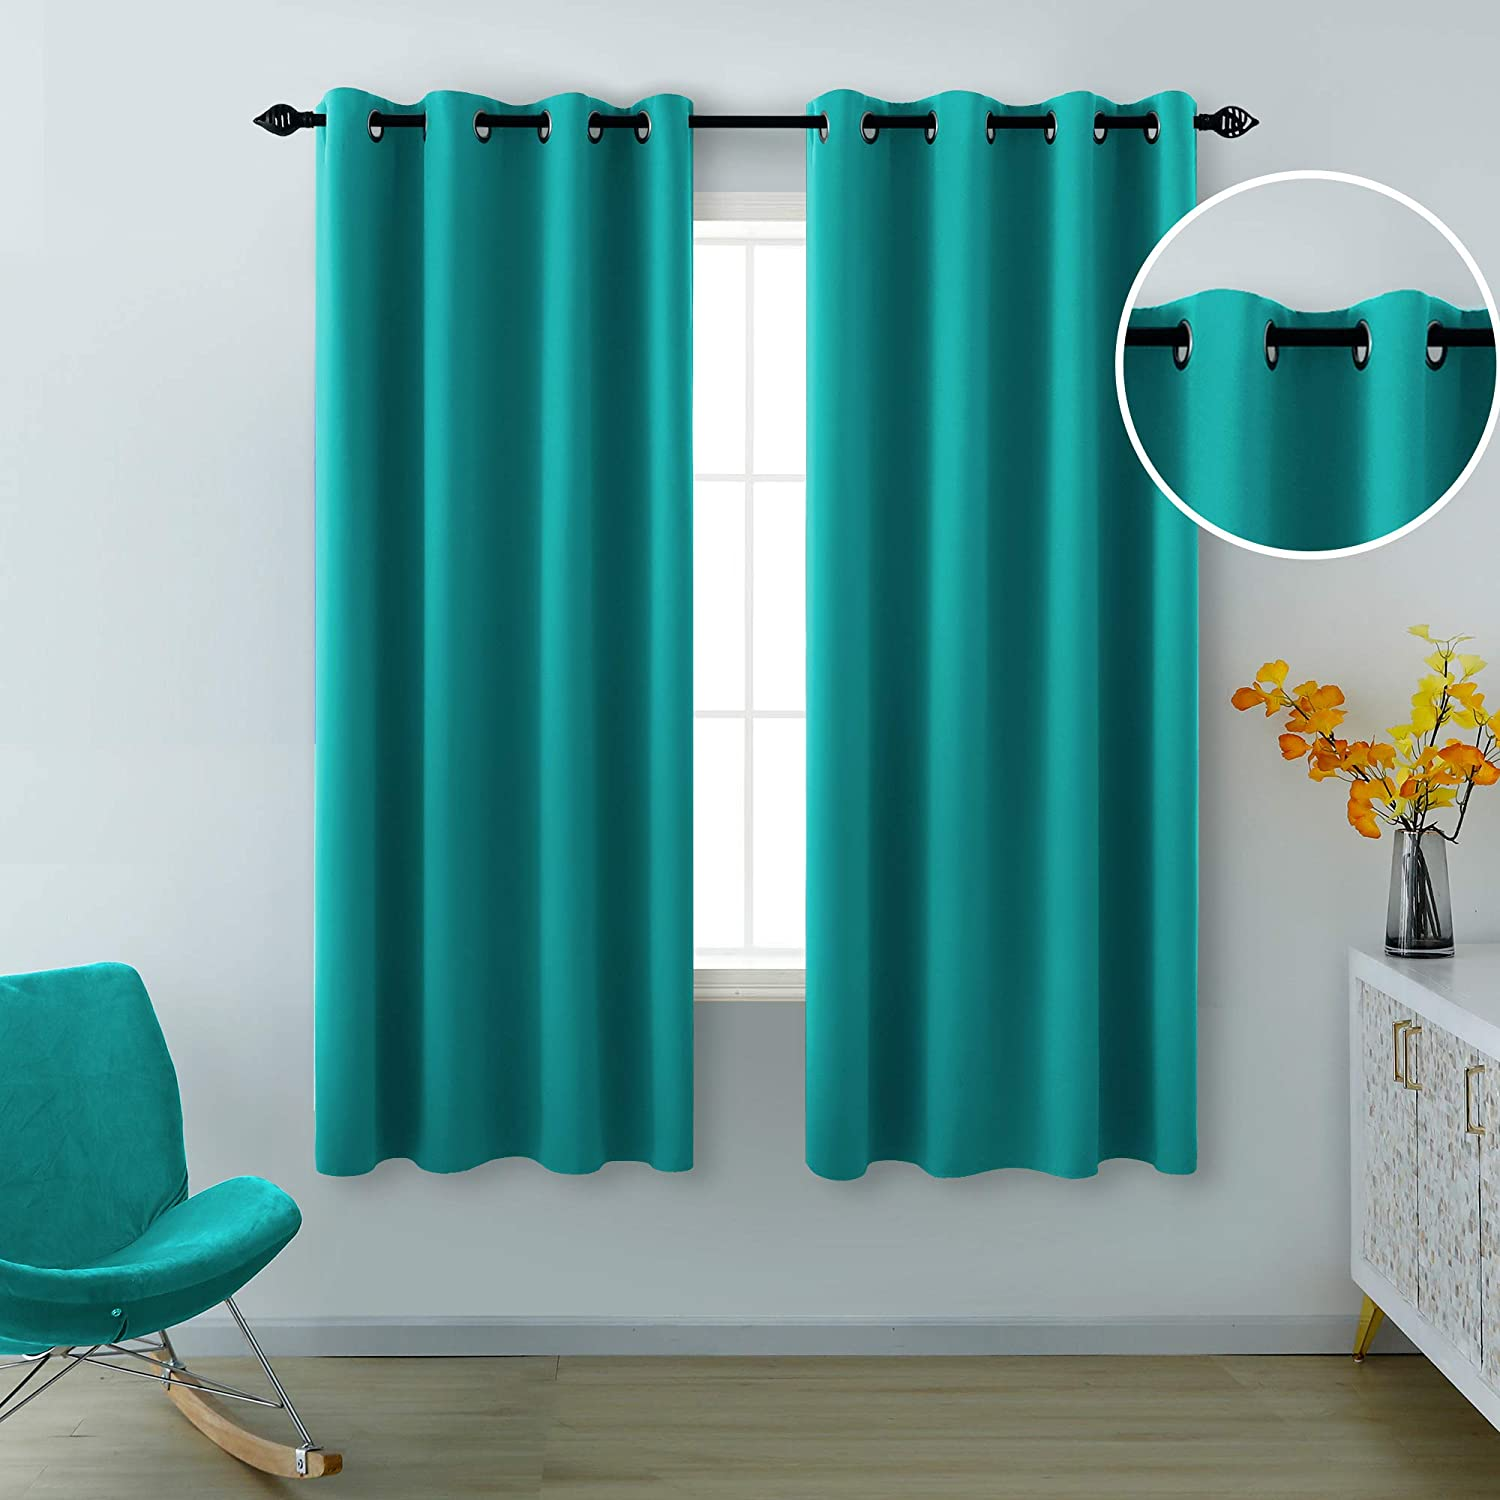 Teal Curtains 63 Inch Length for Girls Room 2 Panels Grommet Light Blocking Thermal Insulated Room Darkening Blackout Curtains for Bedroom Girls Teens 52 x 63 Inches Long